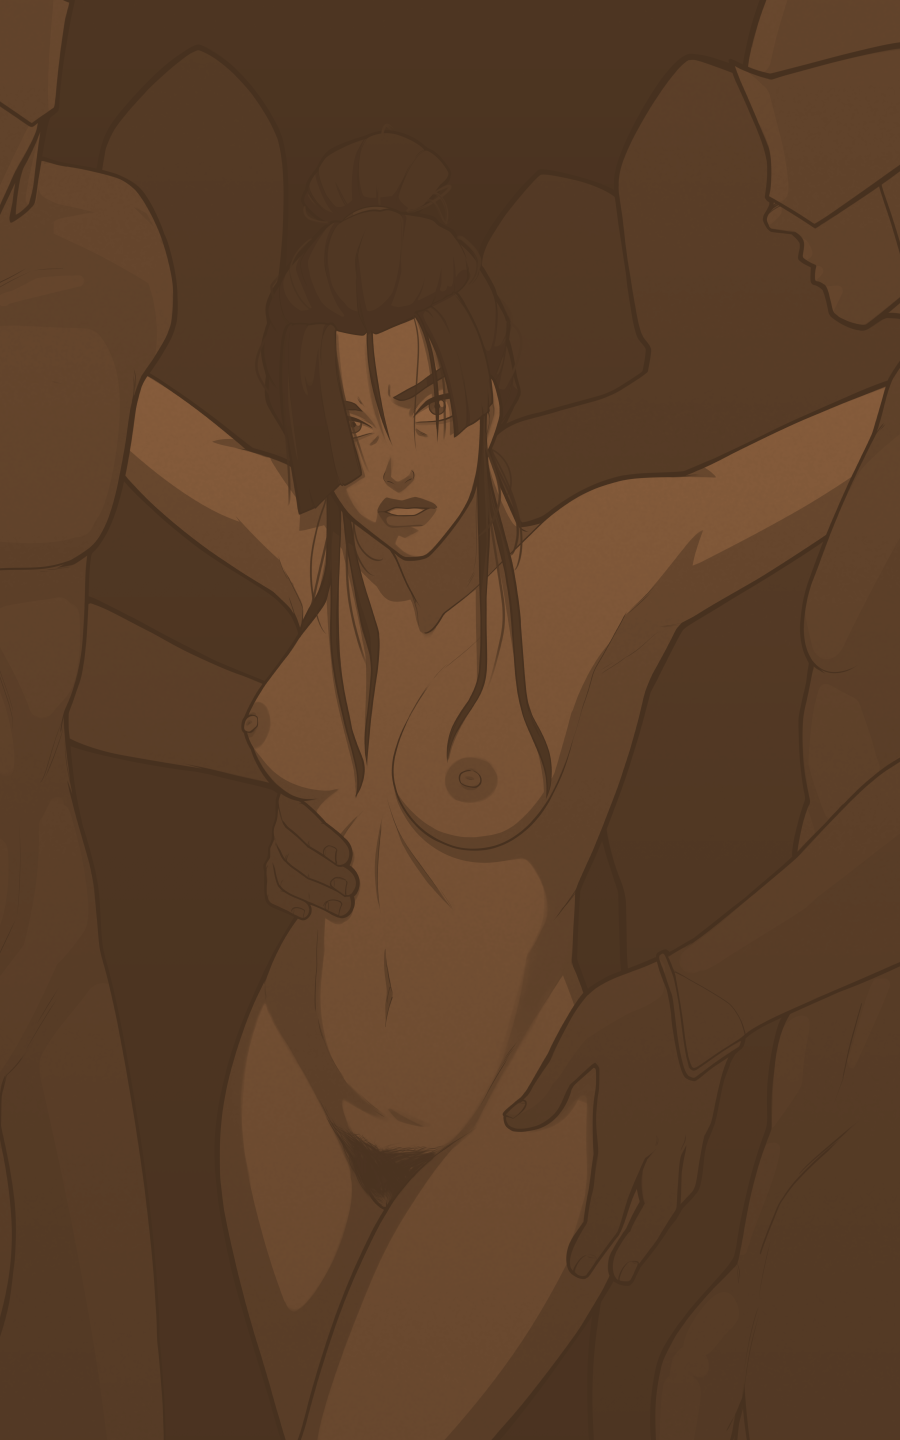 (Mr.Potatoparty) Azula in the Boiling Rock